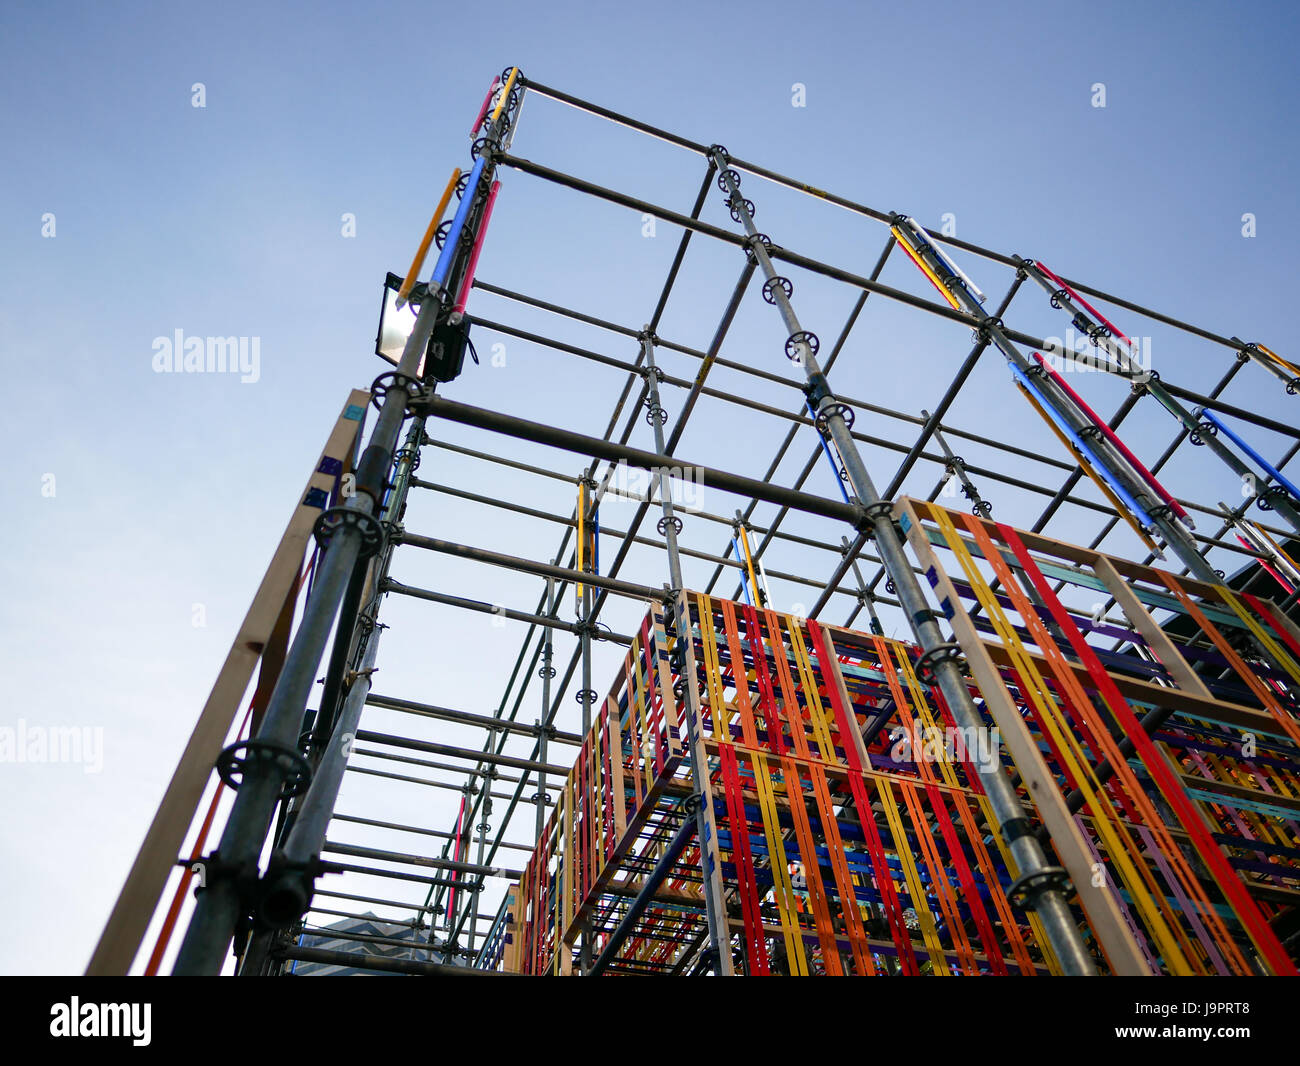 Low Angle View Part of Stage Structure with Colorful Fabric - Stock Image